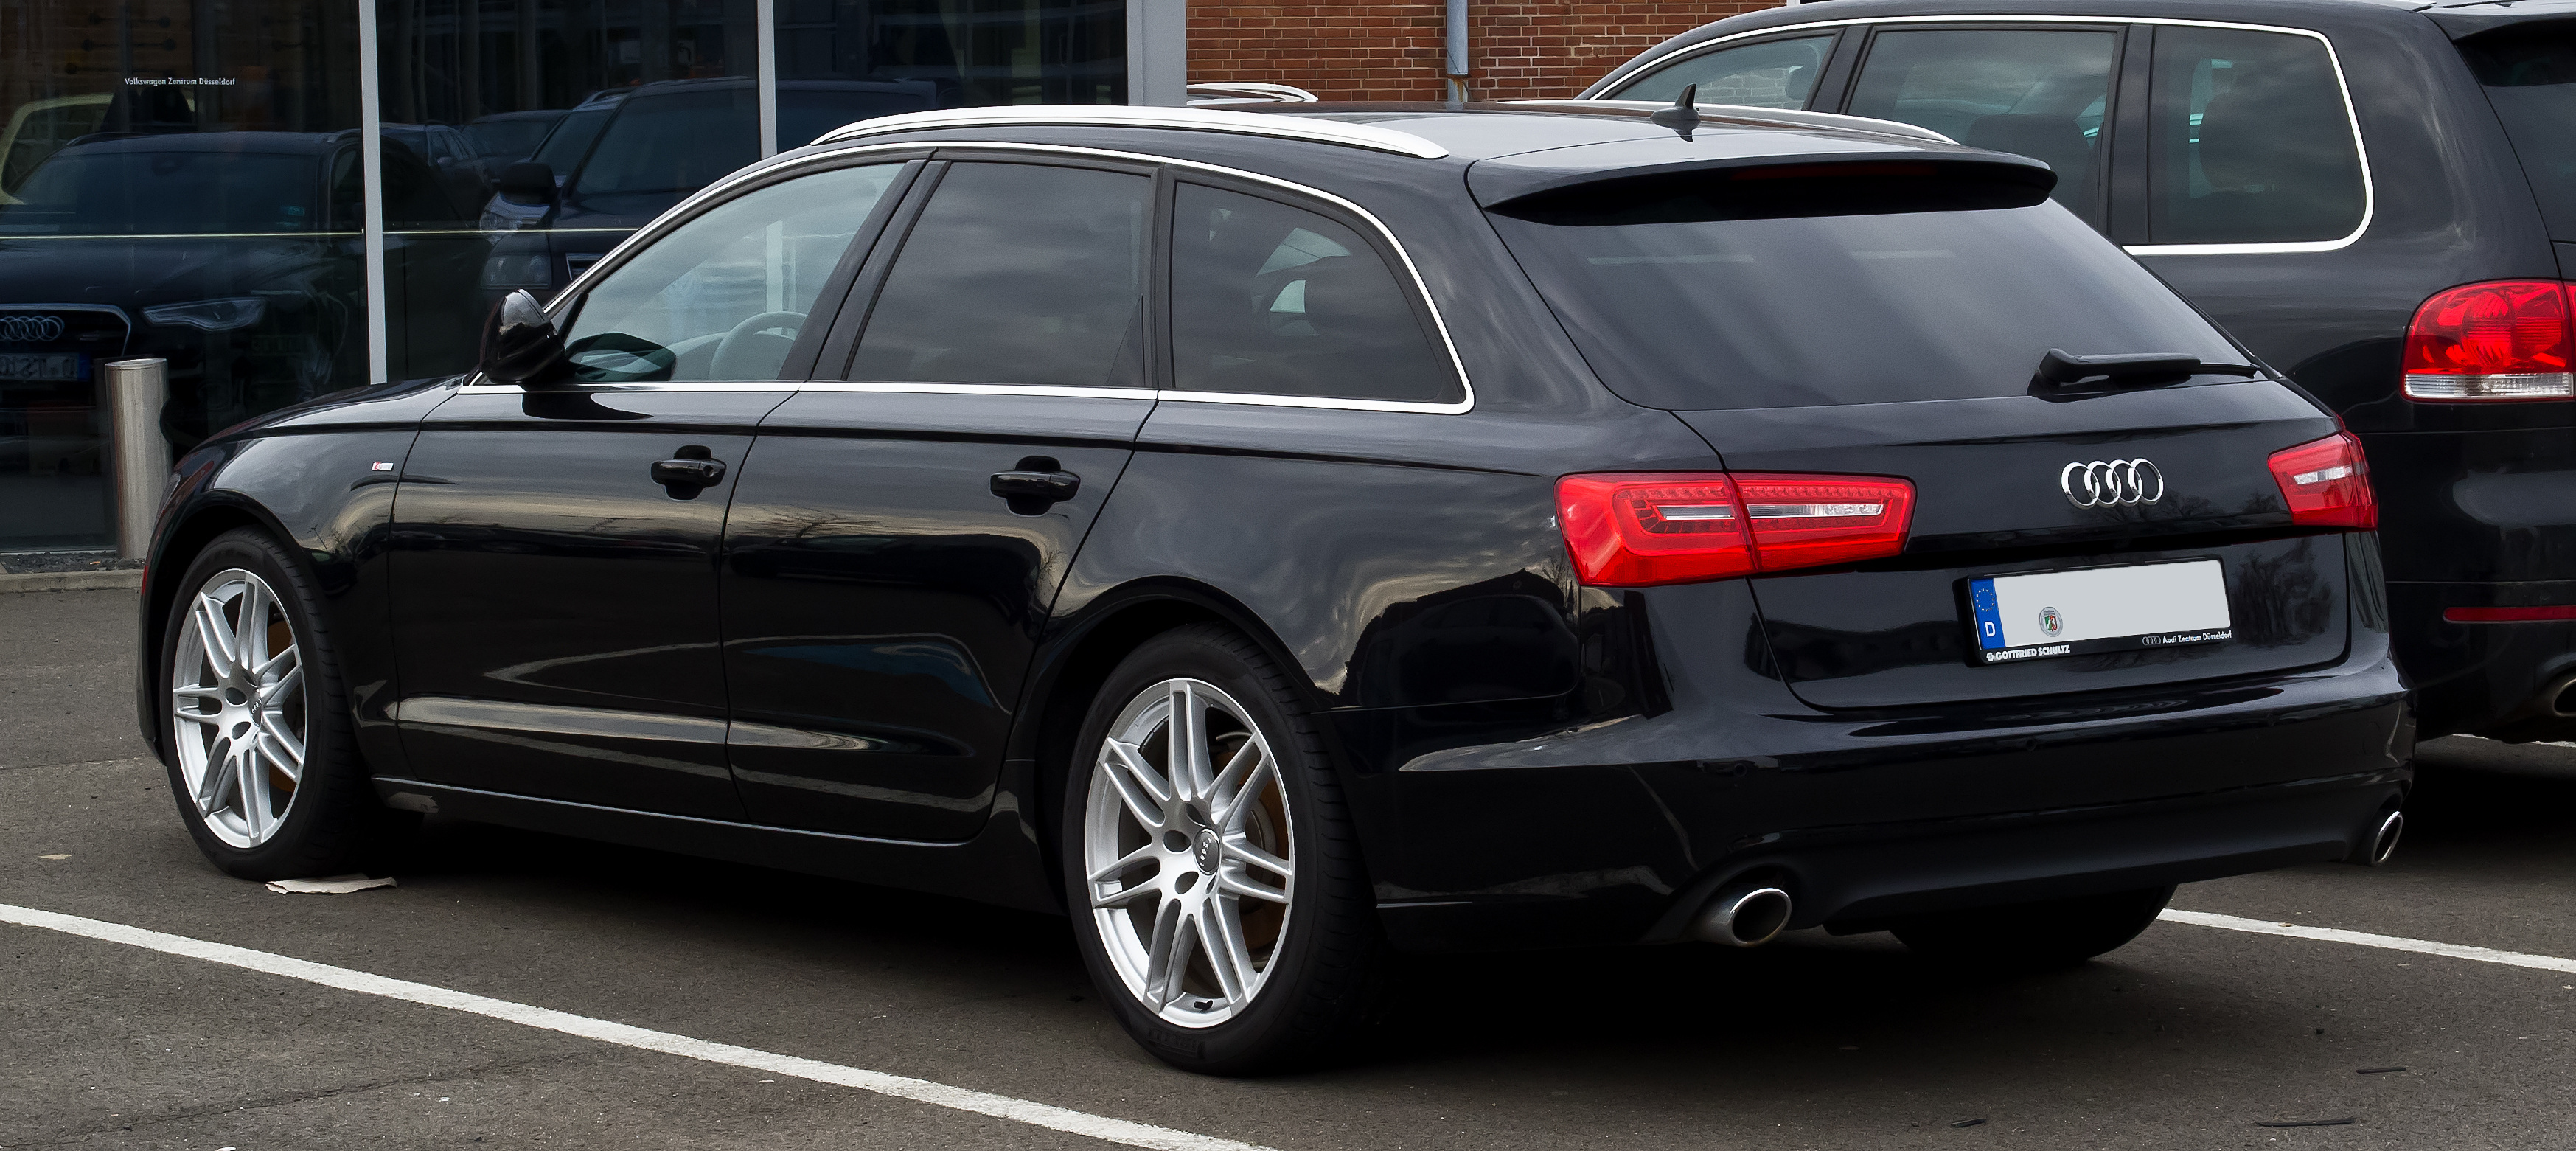 2015 Audi A6 Avant C7 Pictures Information And Specs